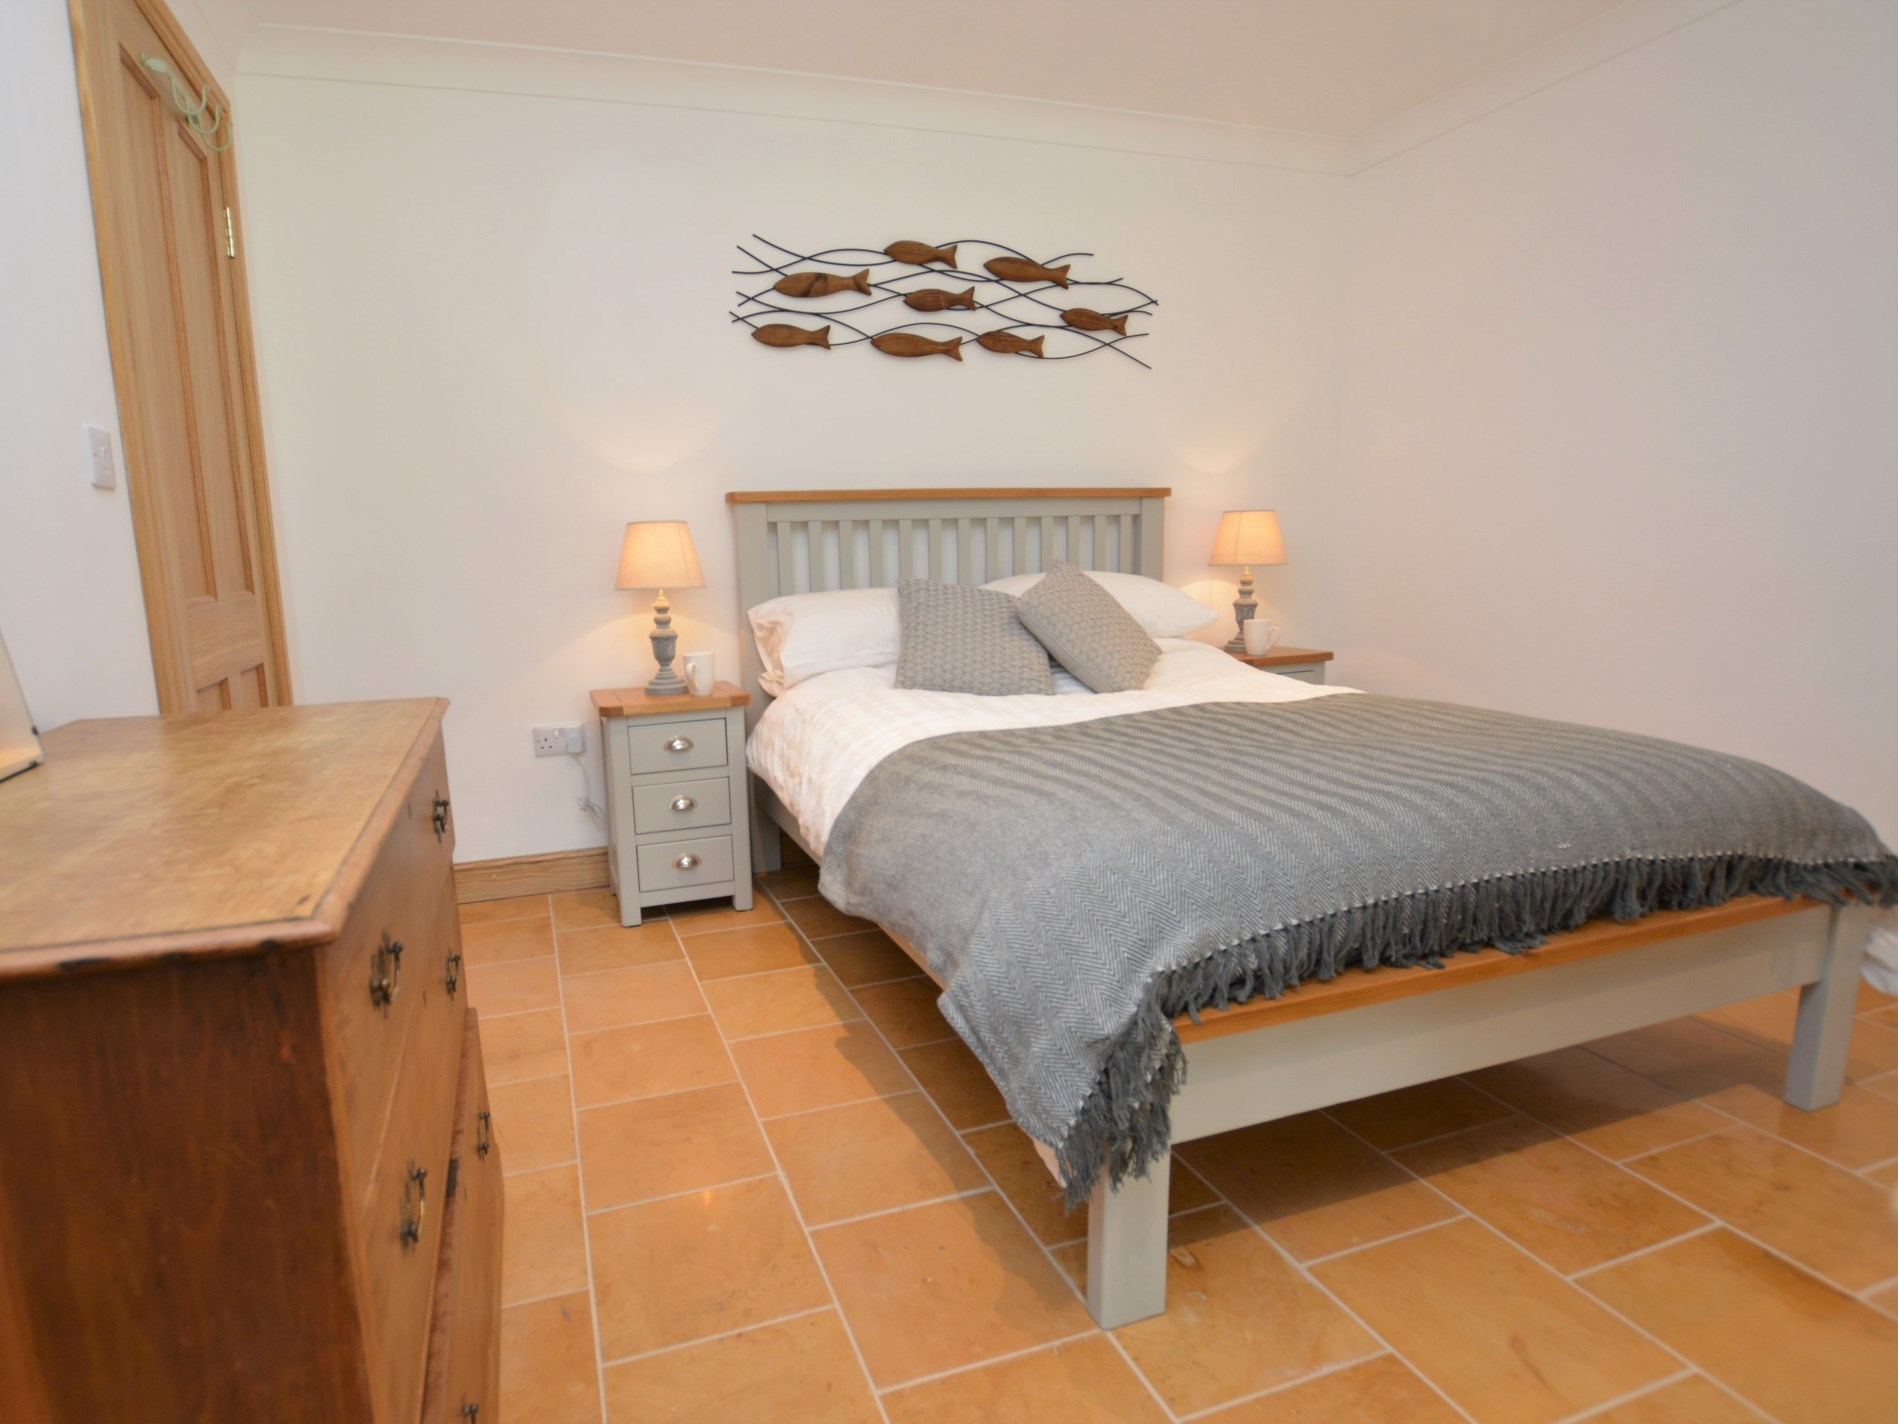 1 Bedroom Cottage in Lyme Regis, Dorset and Somerset